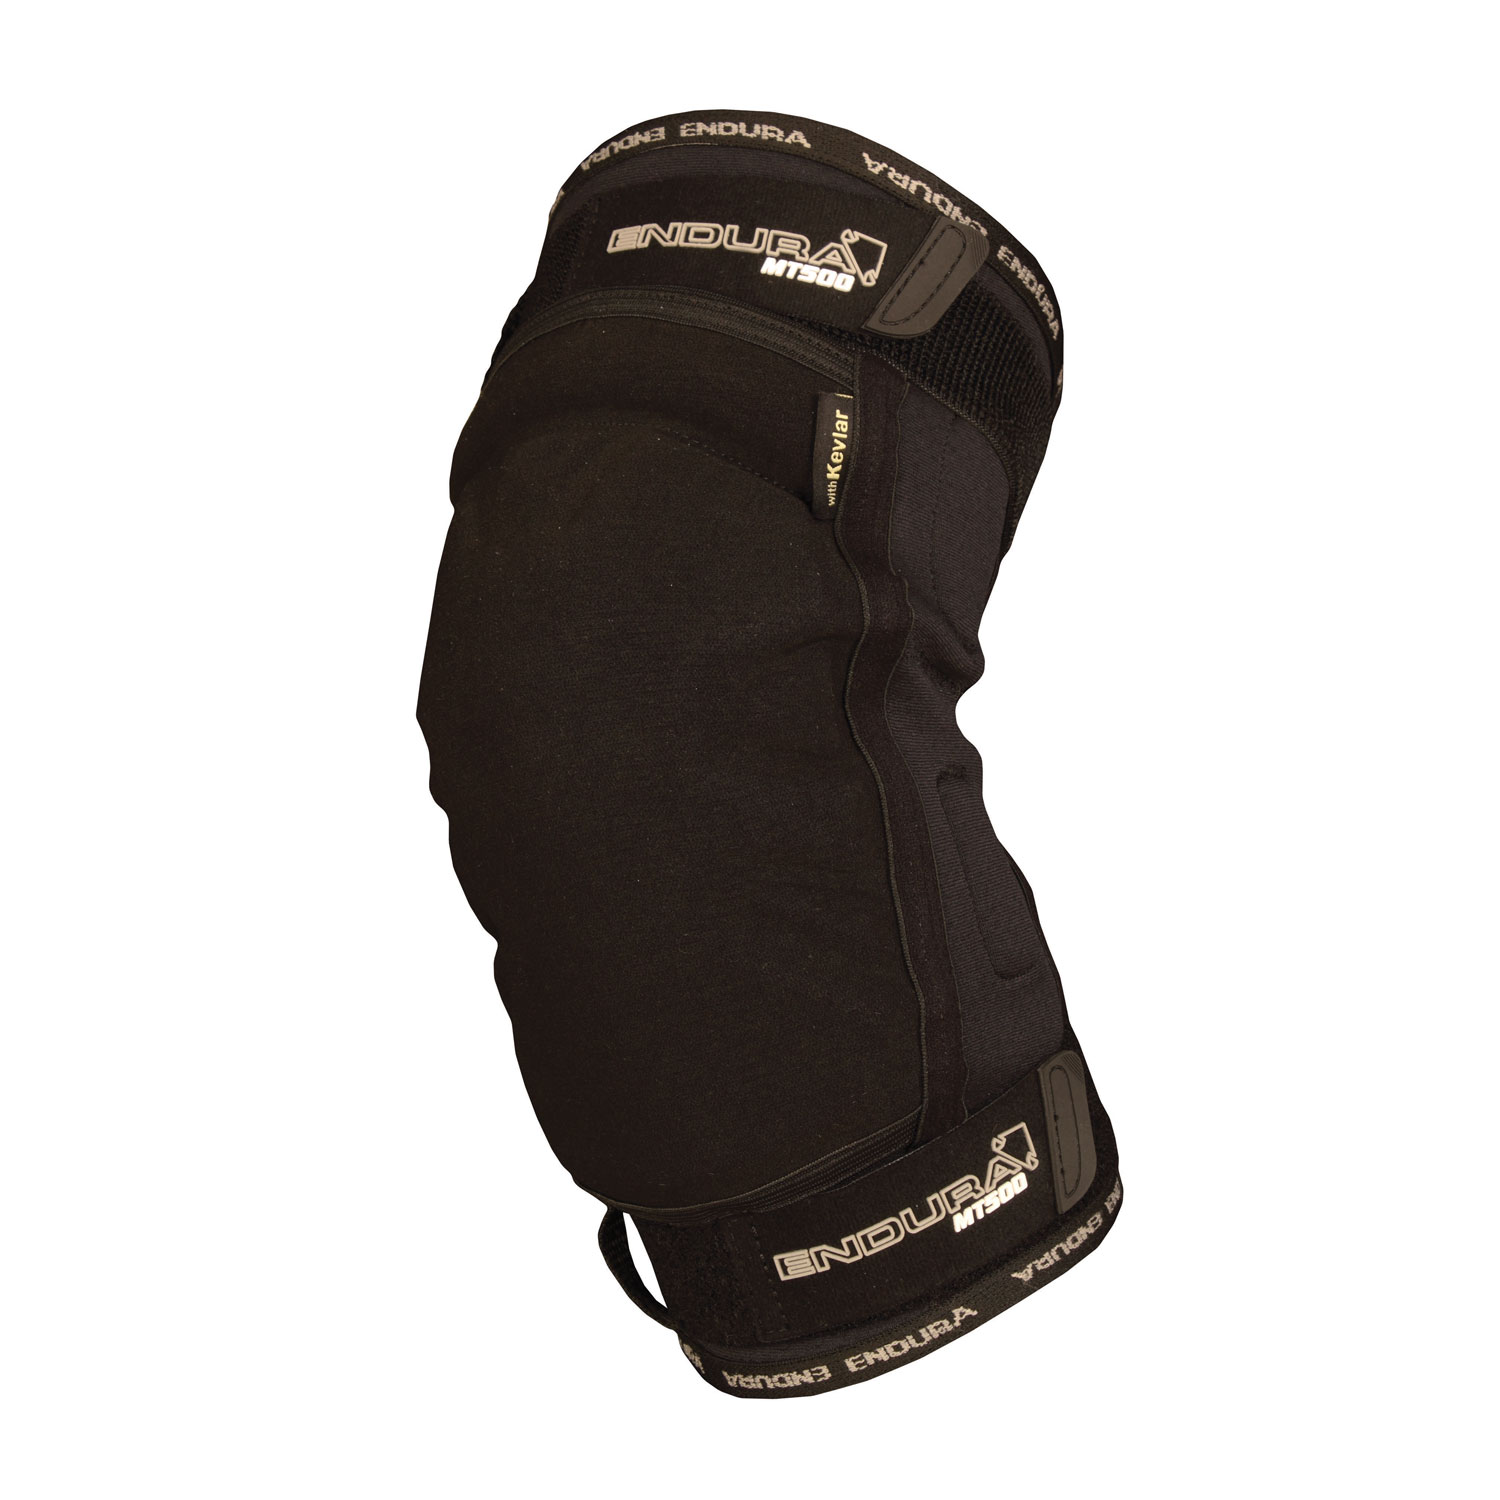 MT500 Knee Protector Black/None